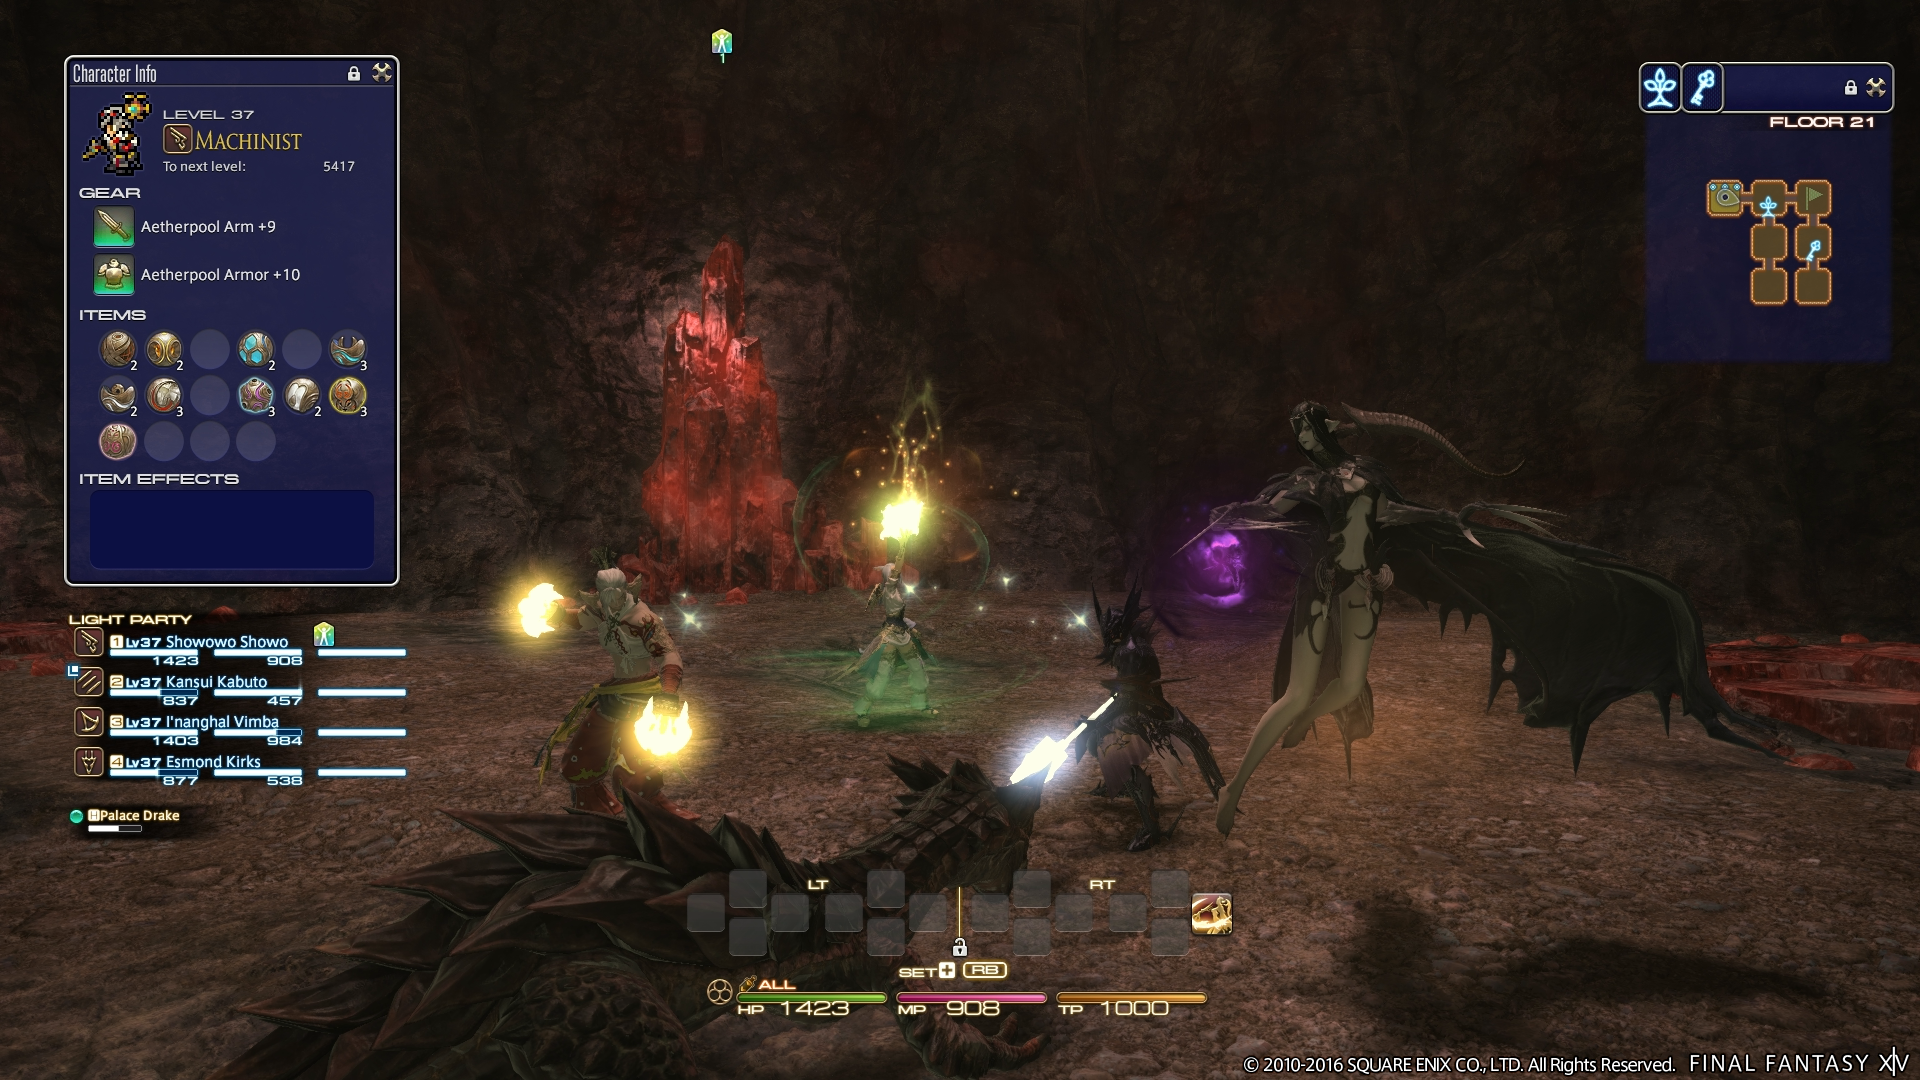 Final Fantasy XIV Patch 3.35 Detailed